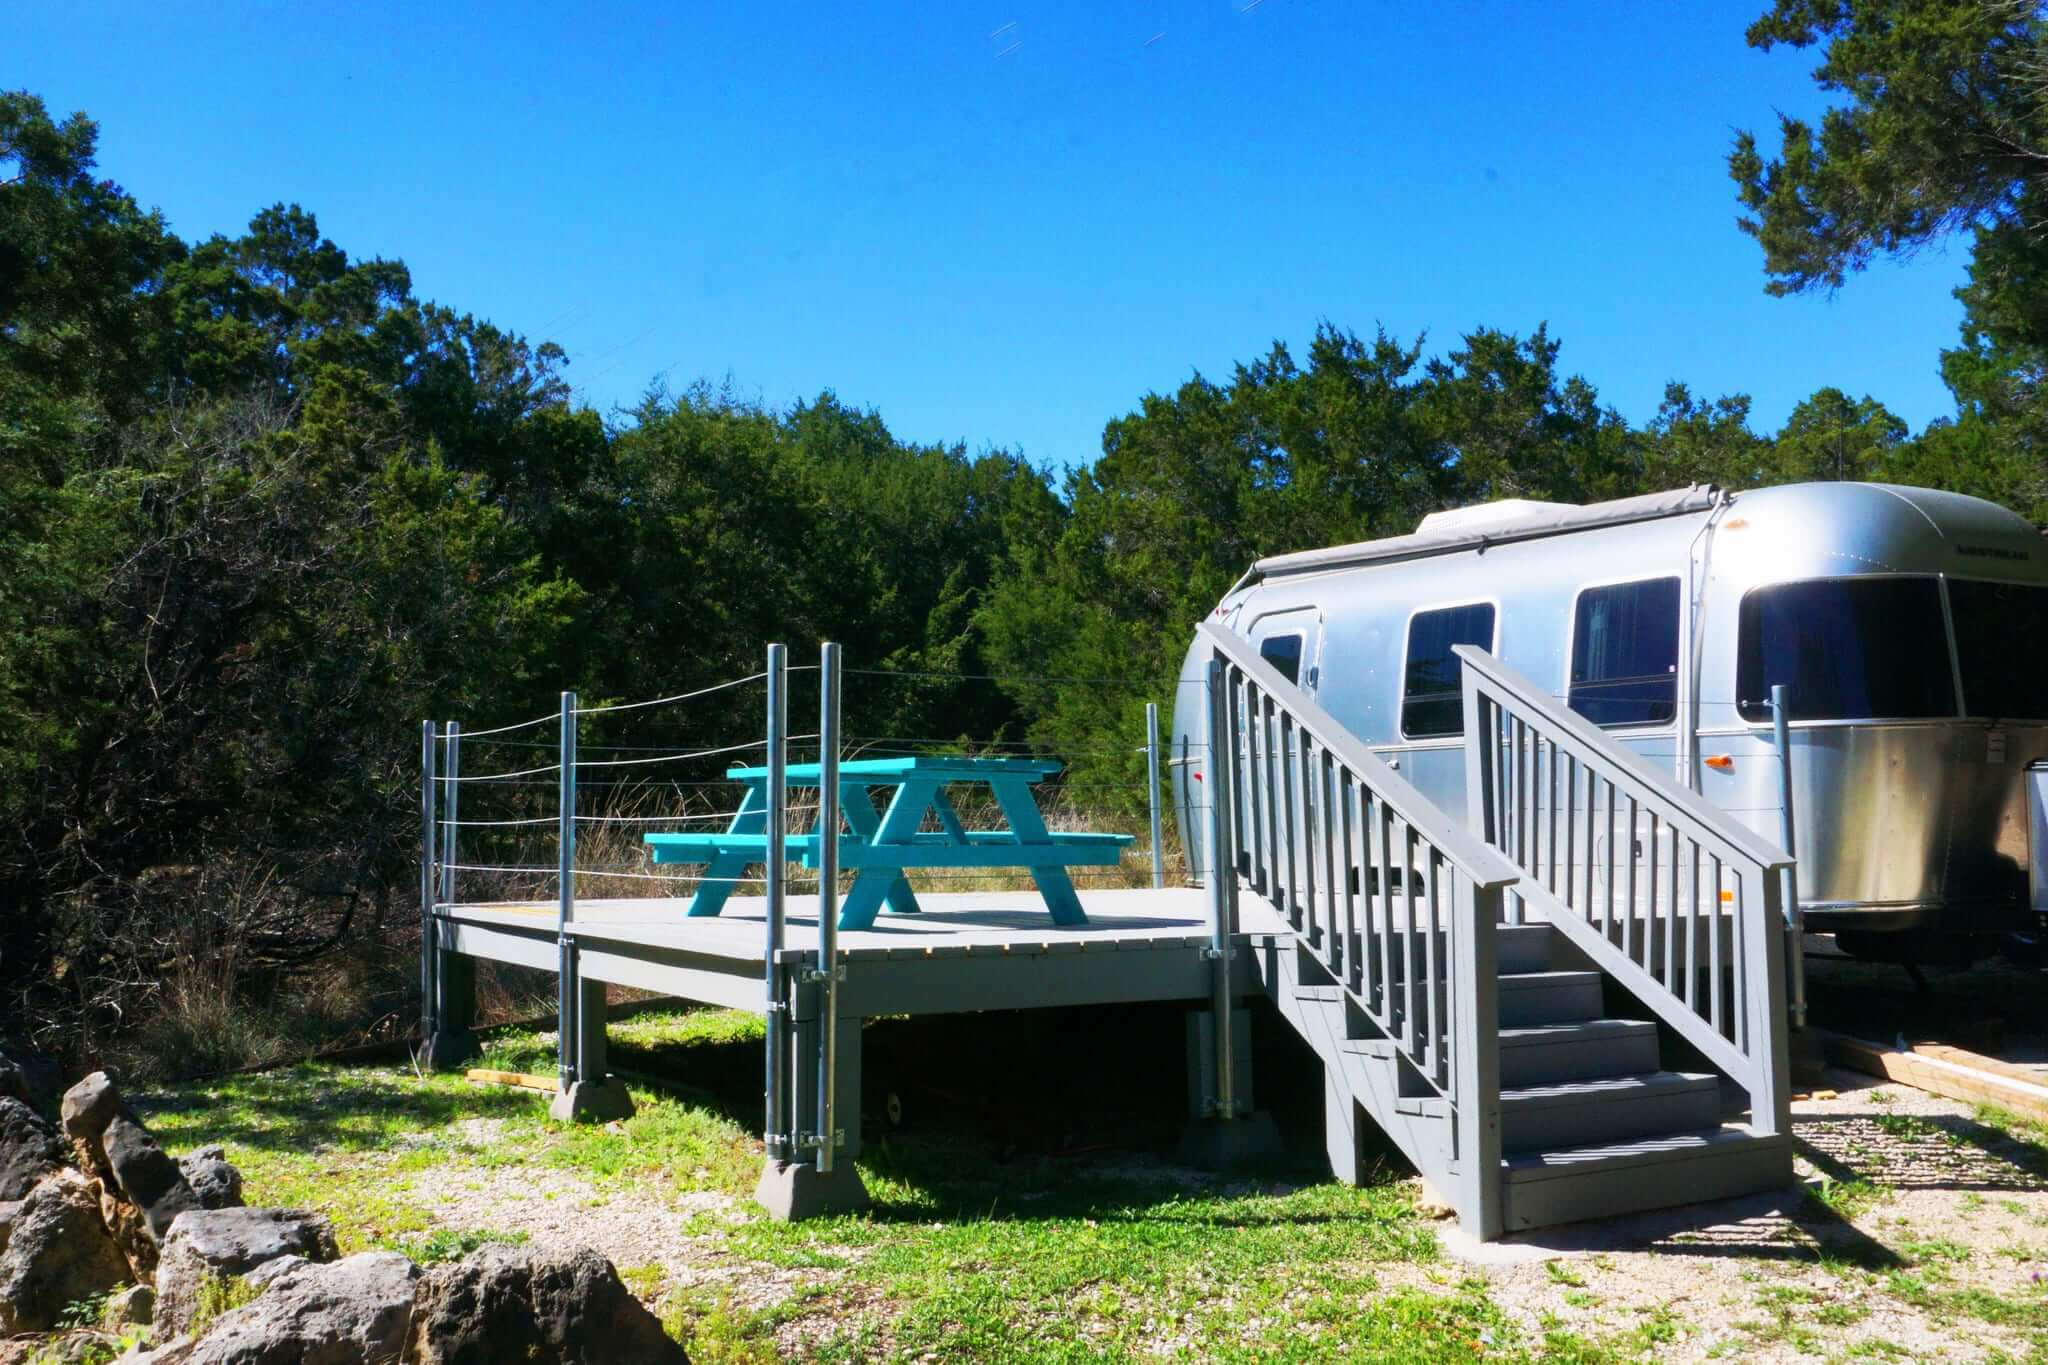 Staying in an recreational vehicle is a fun way to relax in the Hill Country